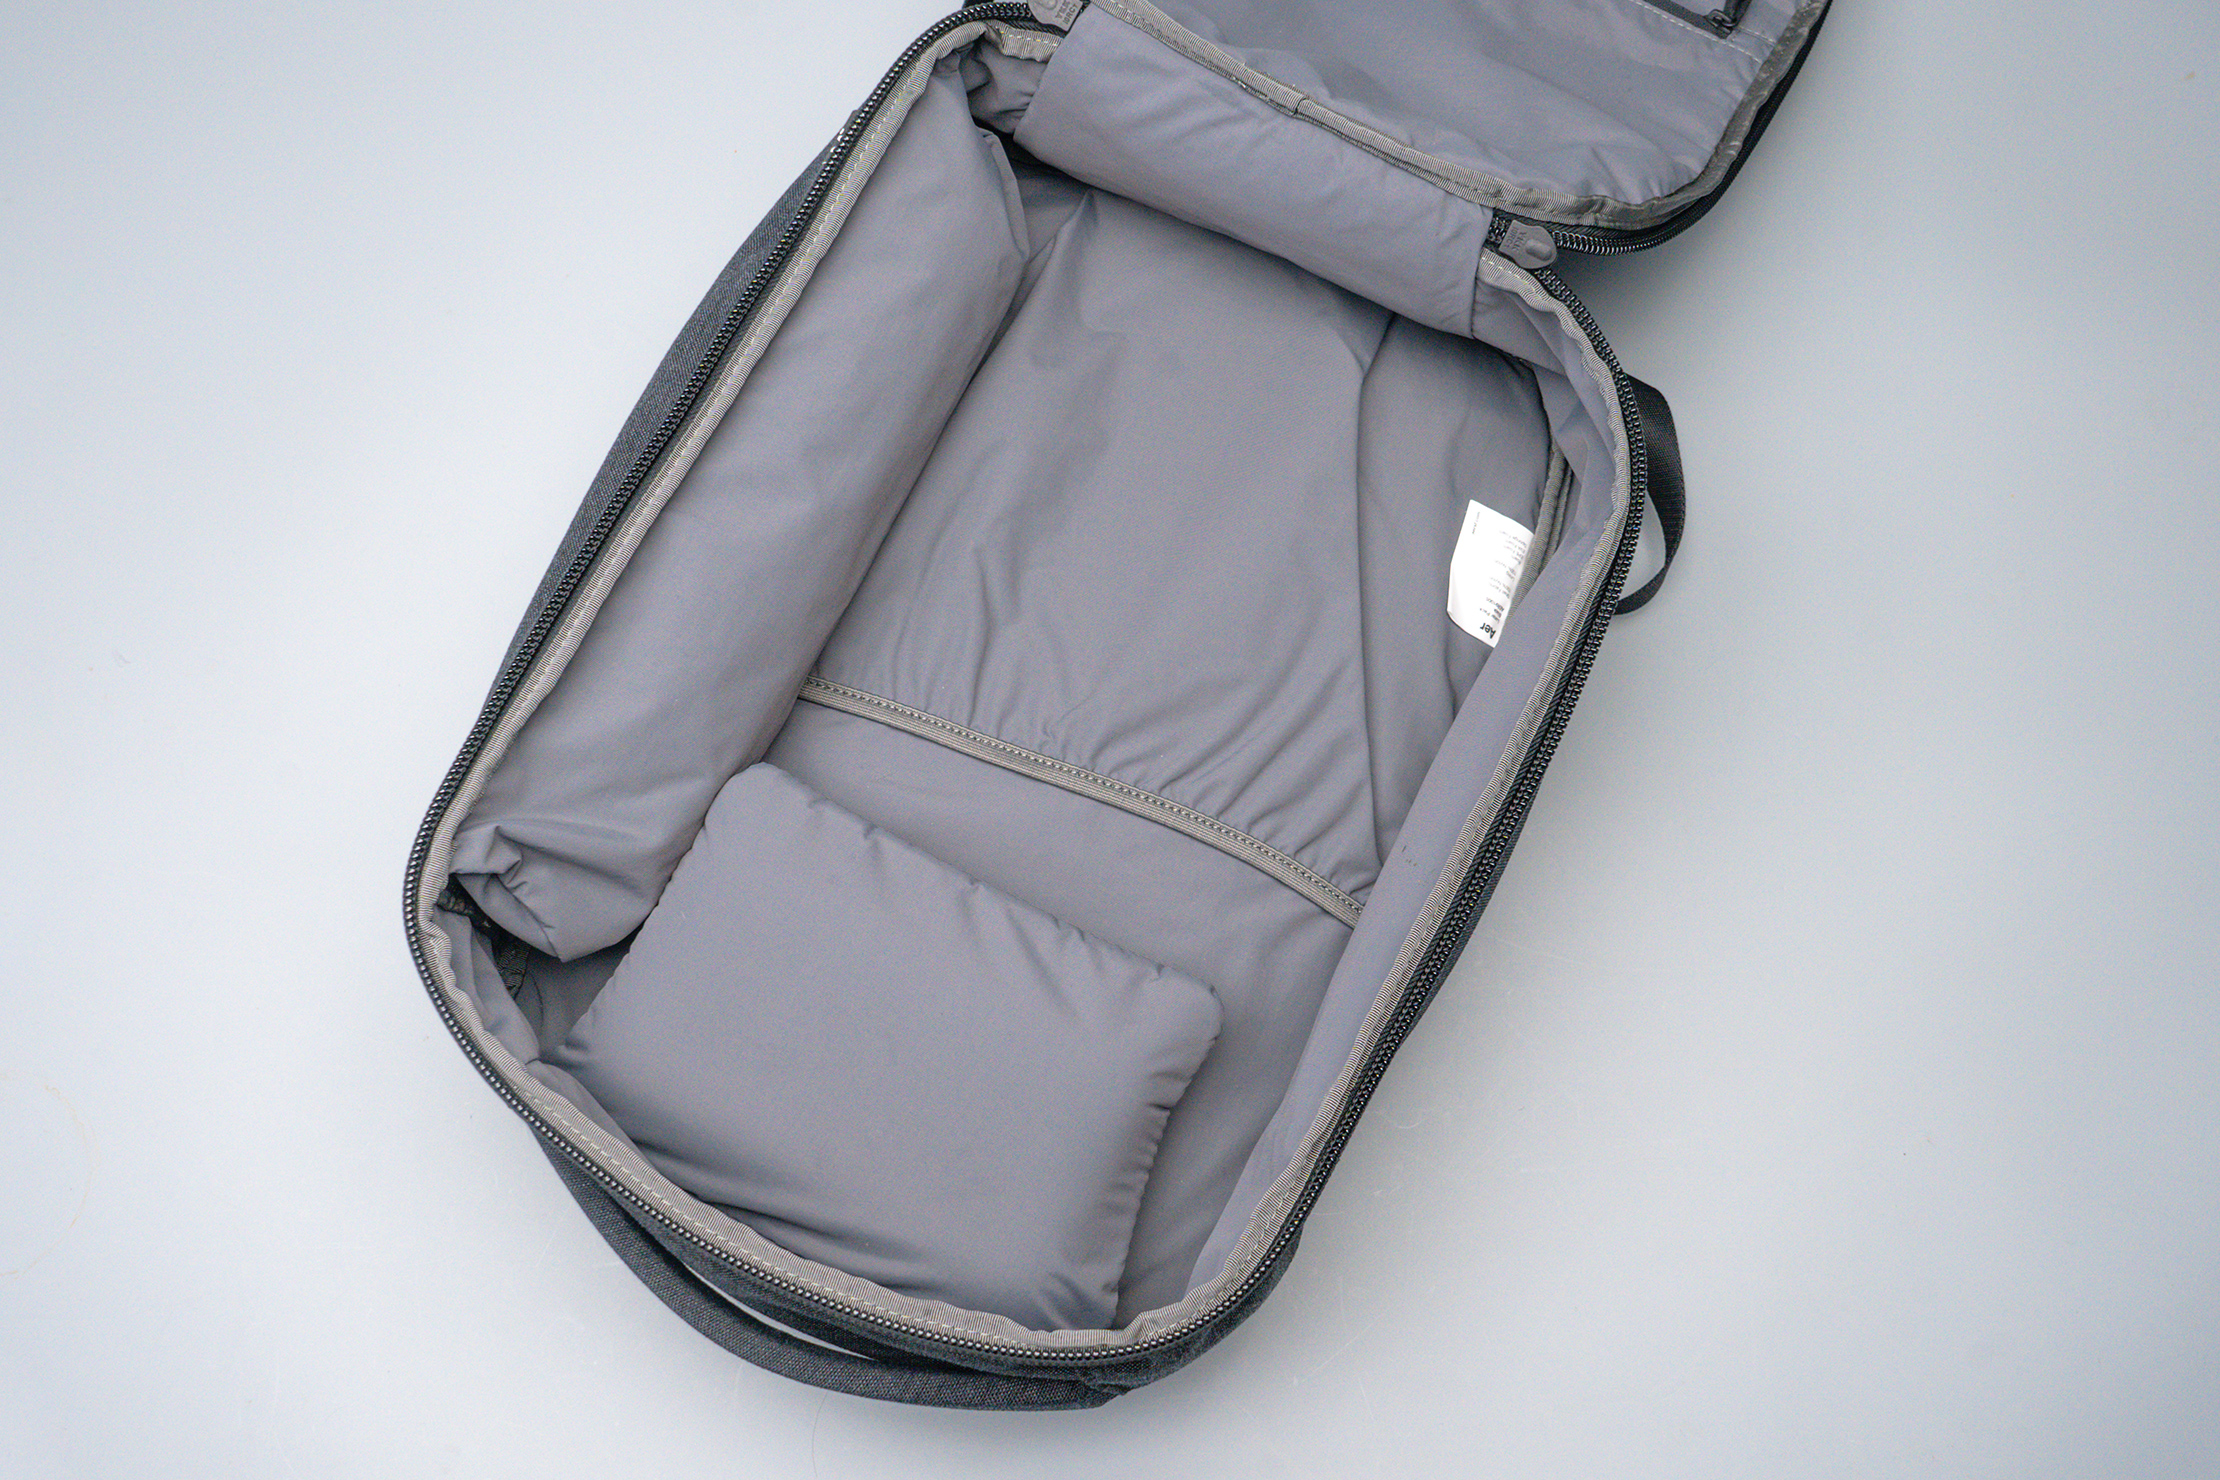 Aer x Ministry of Supply Lunar Pack Main Compartment Empty